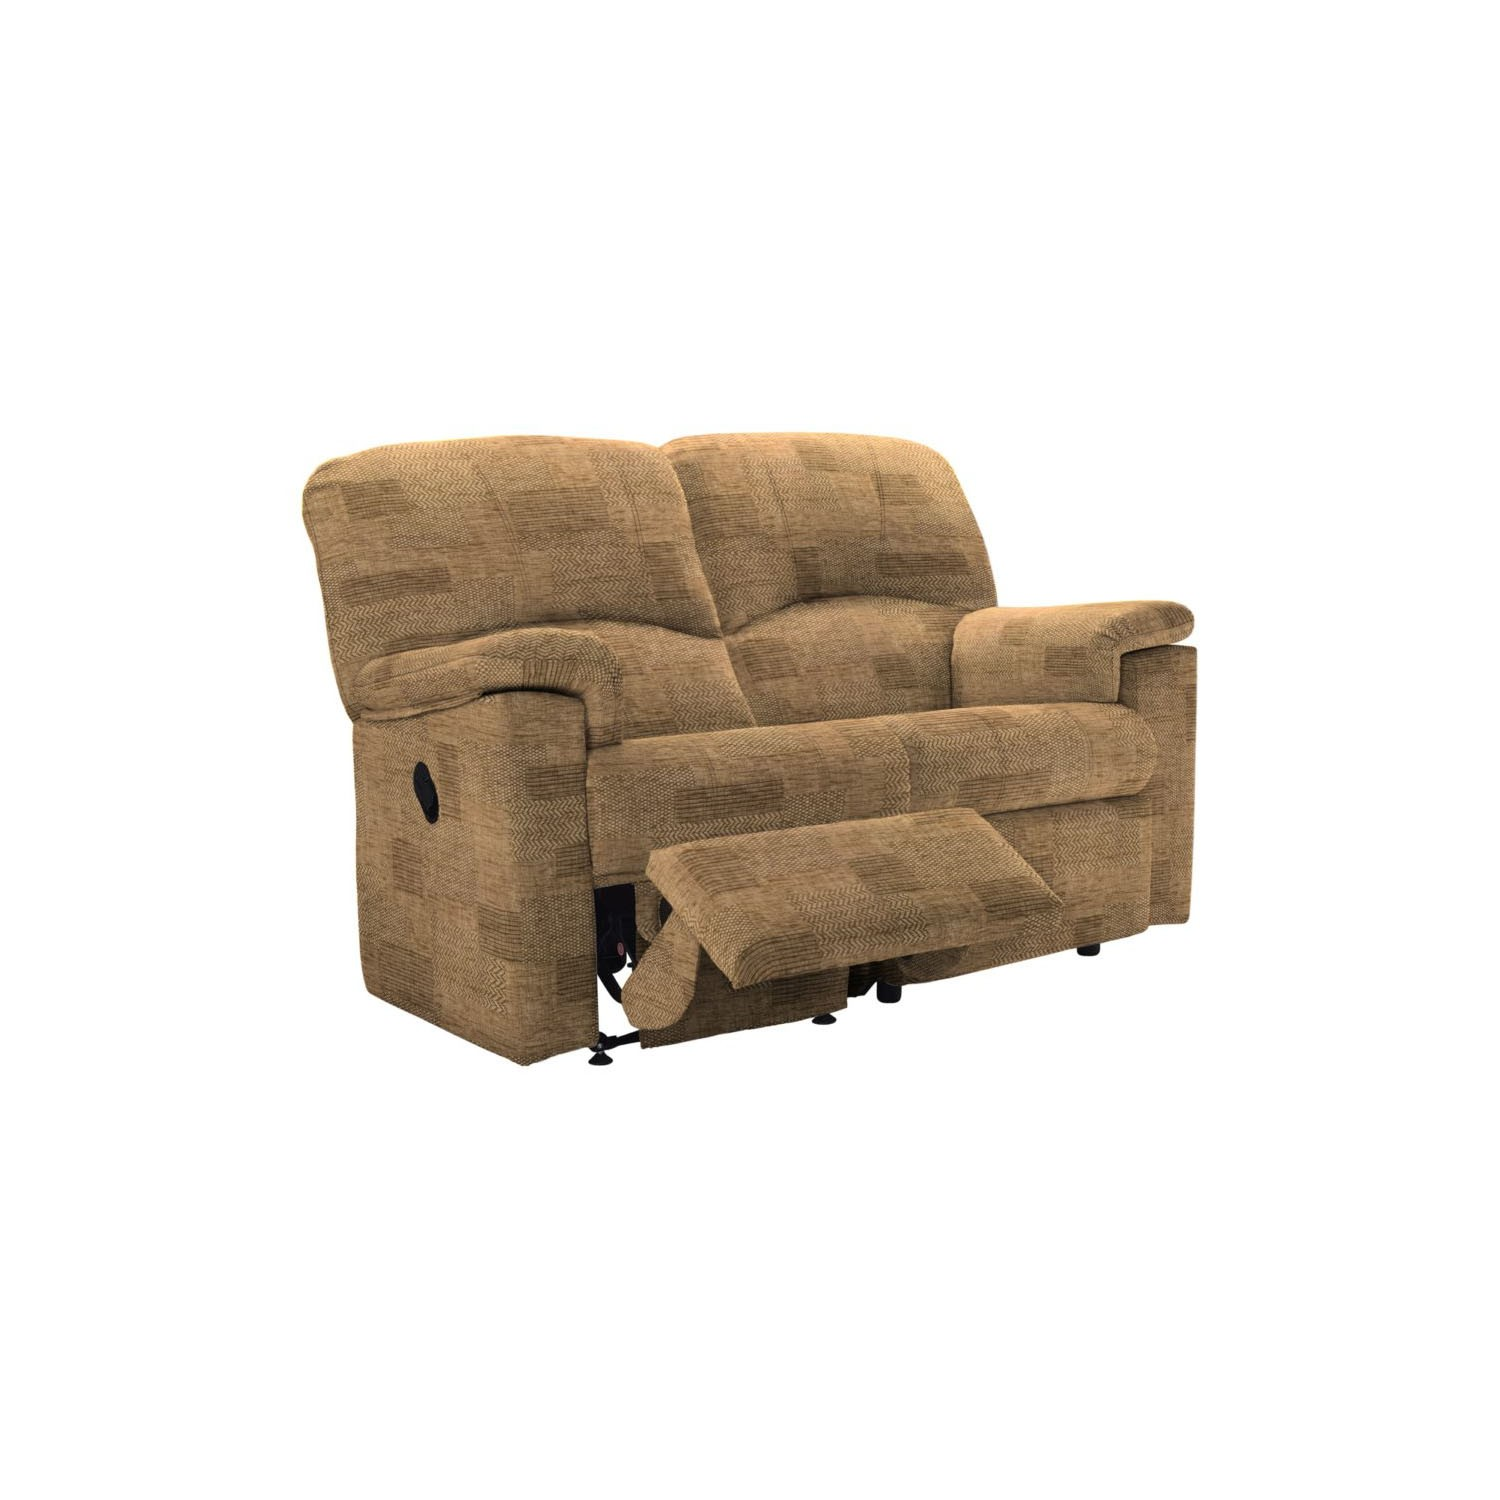 2 seater power recliner sofa pink leather suppliers g plan chloe double leekes